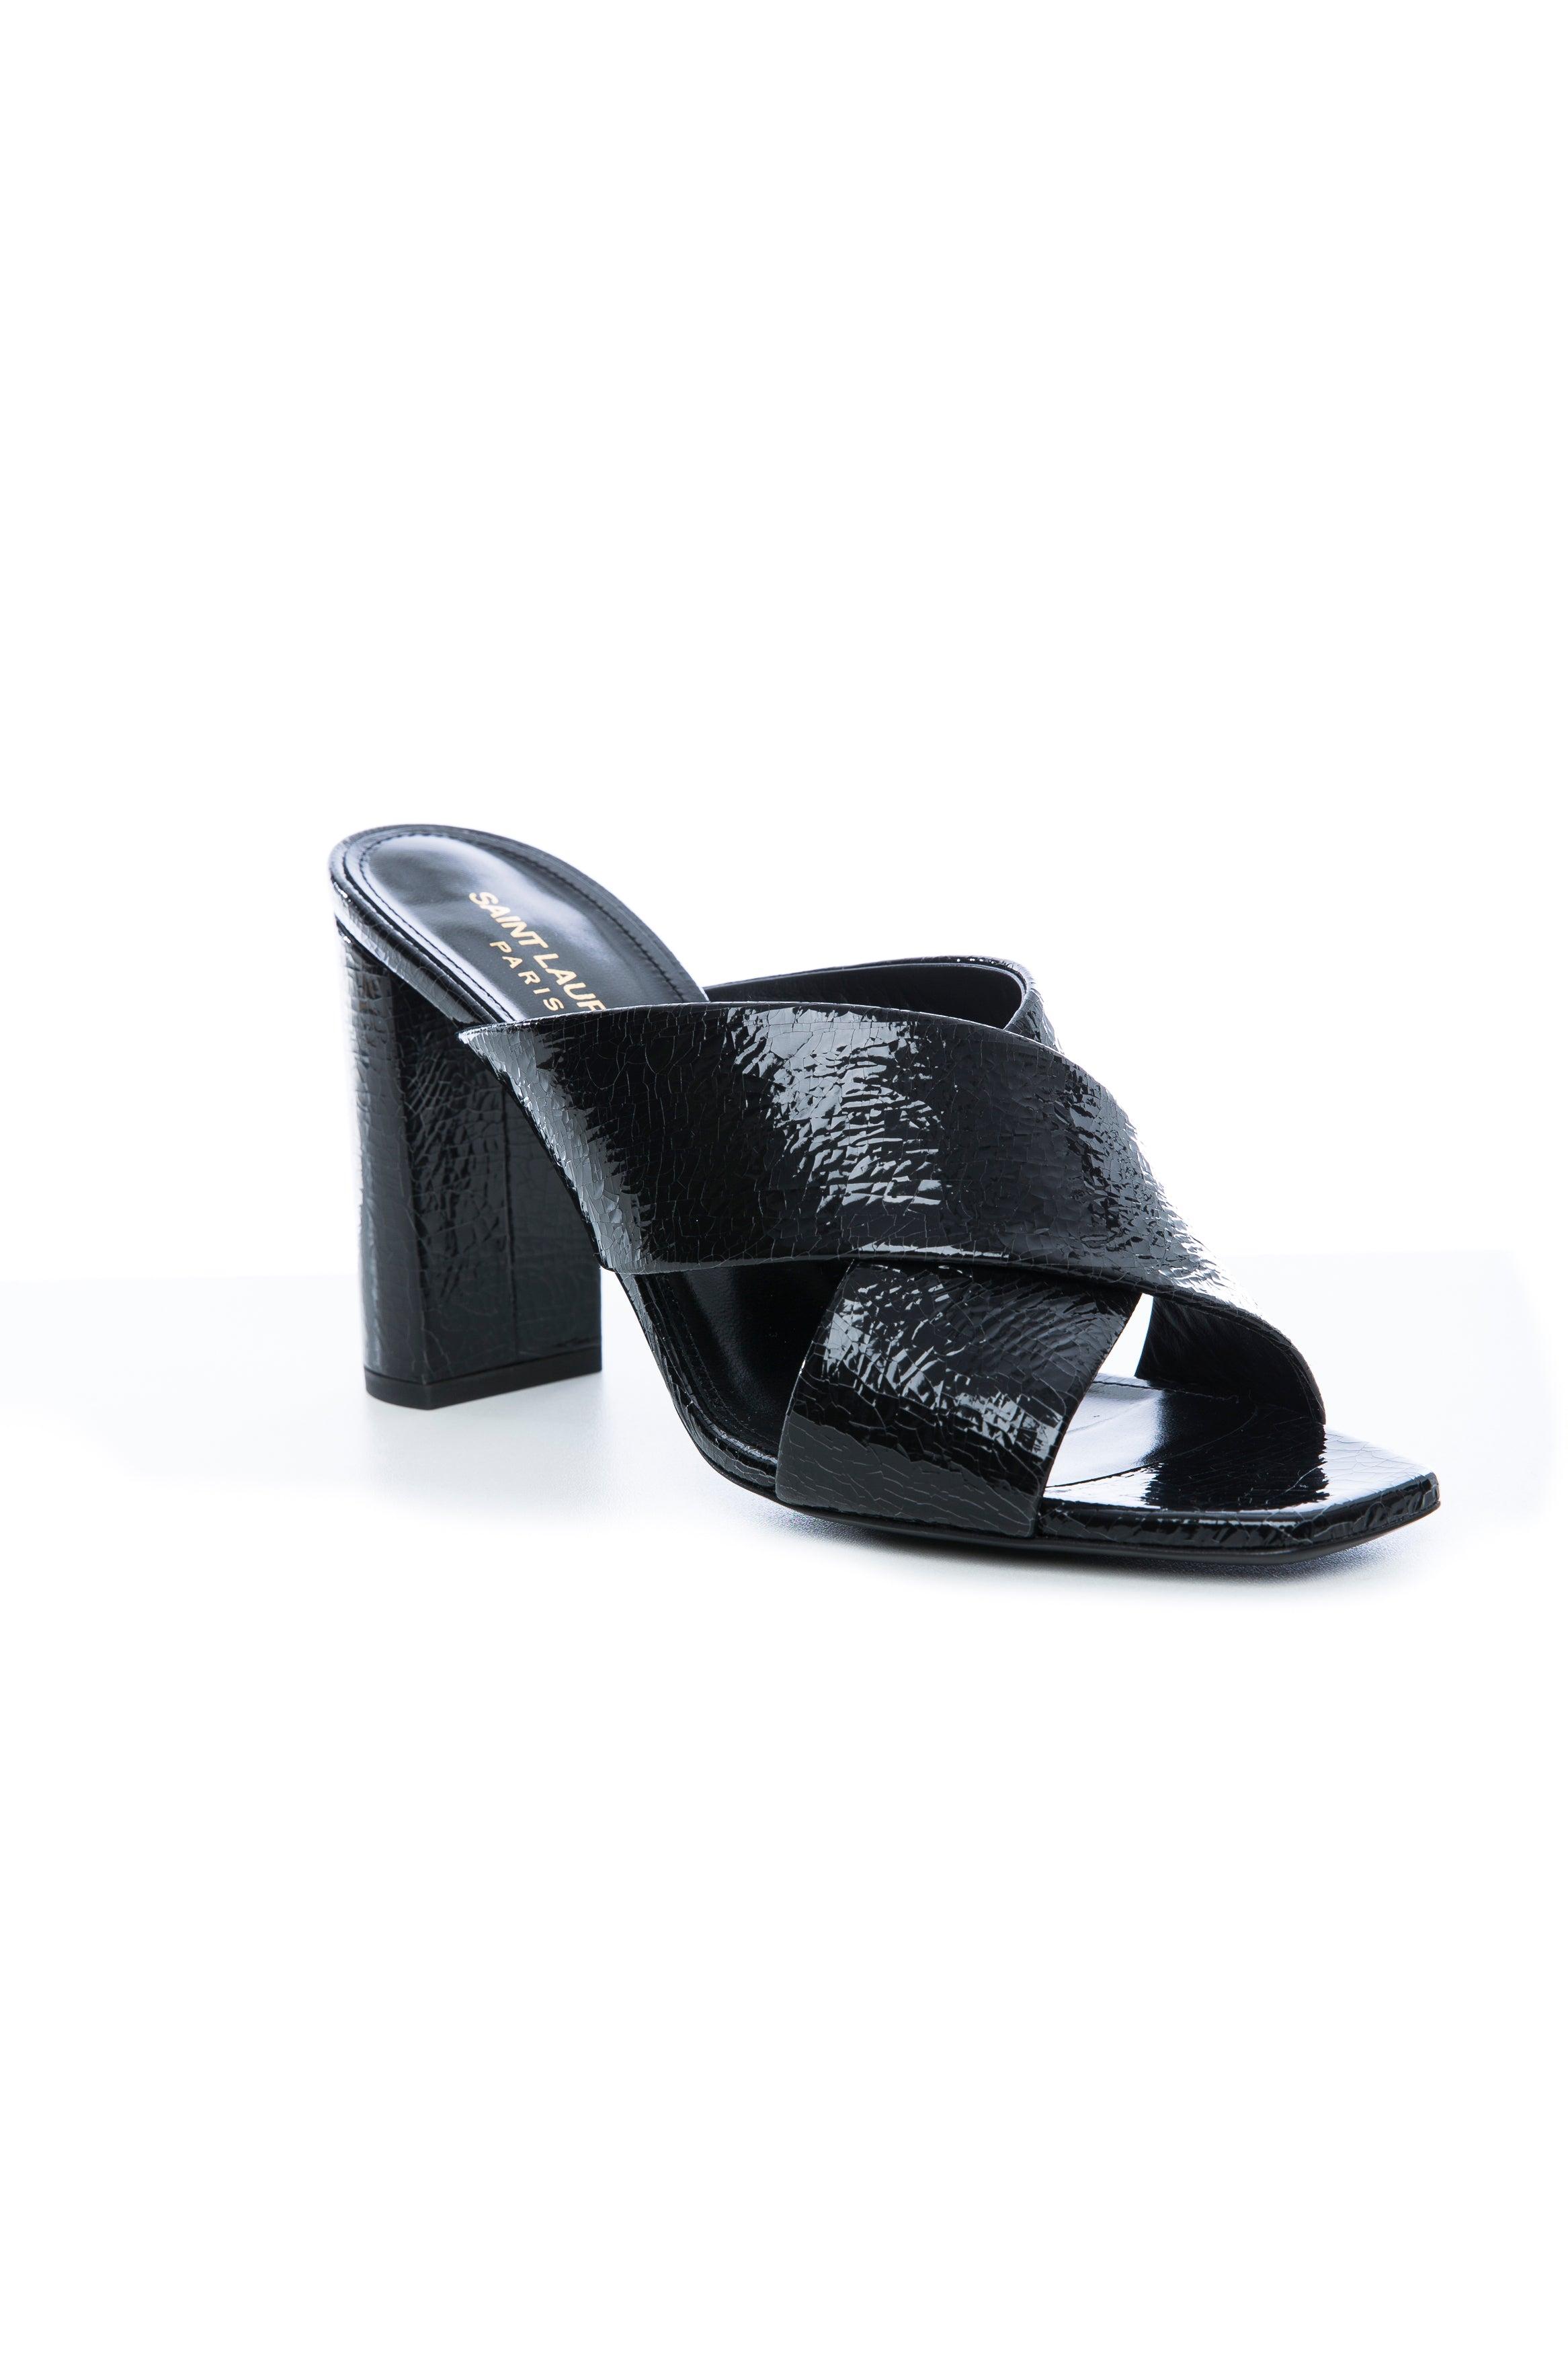 LOULOU 95 MULE BLACK METALLIC CRACKED LEATHER